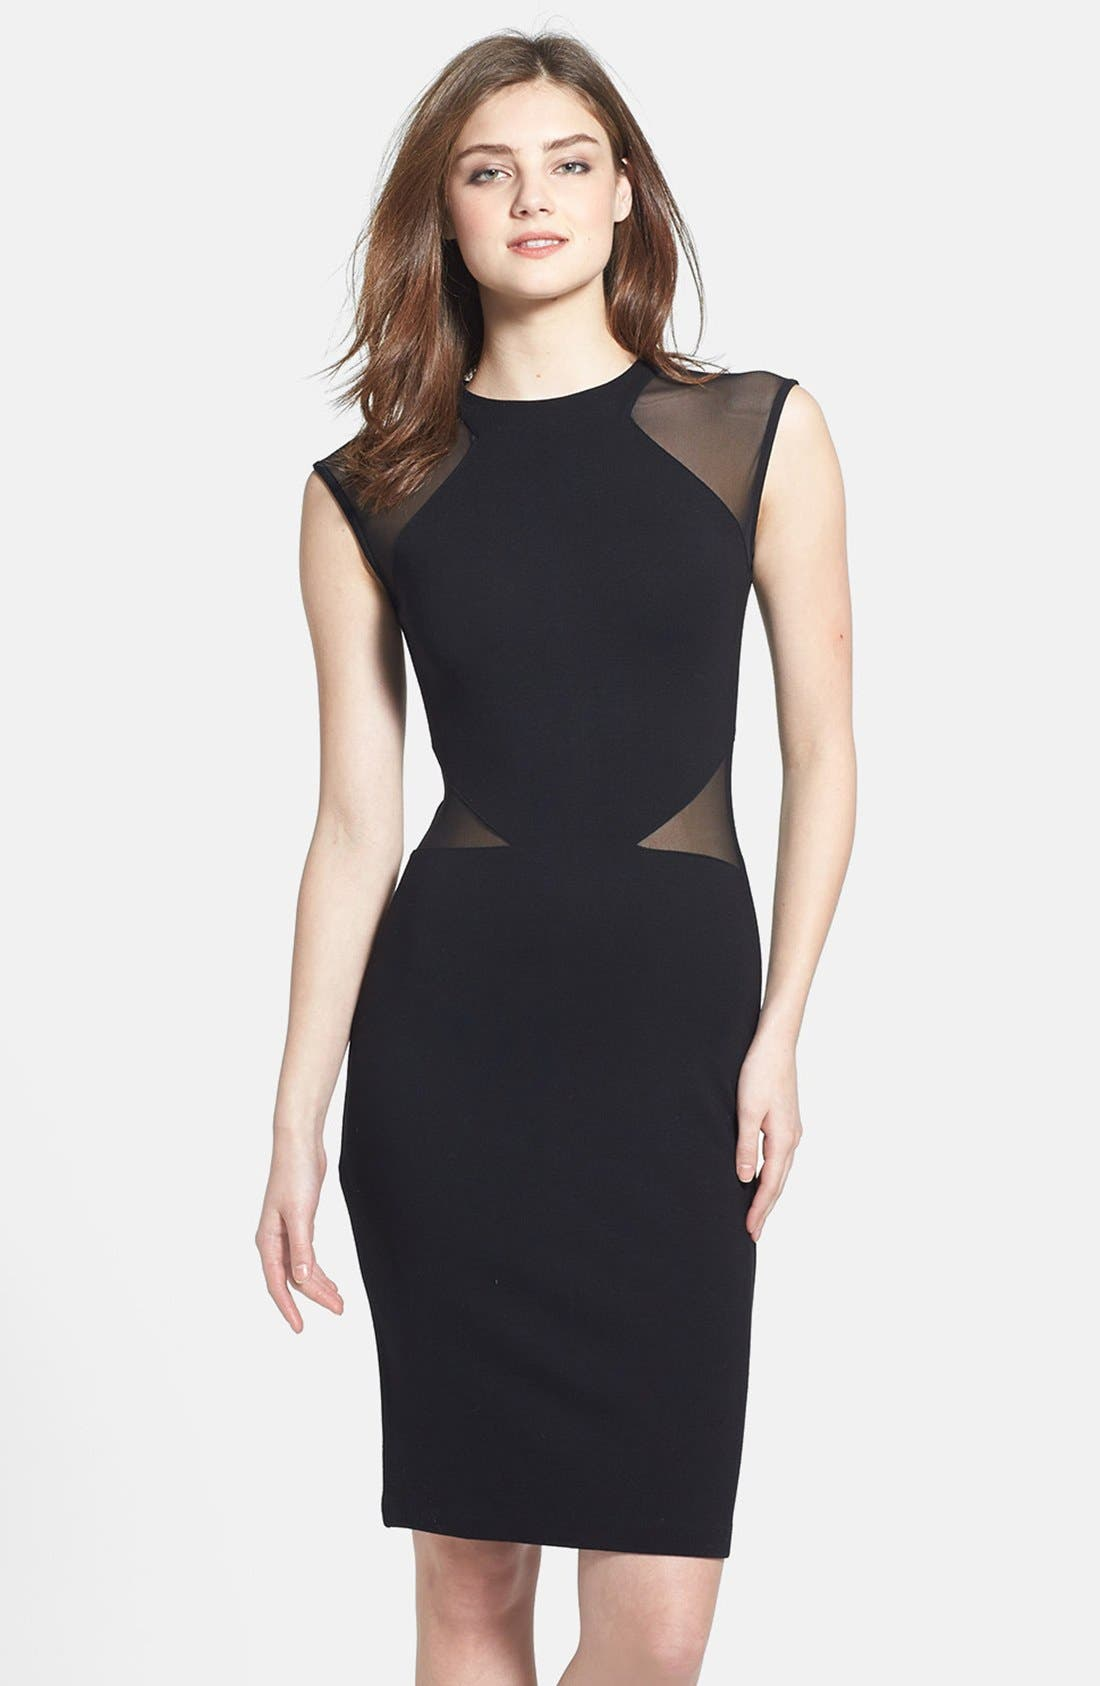 FRENCH CONNECTION 'Viven' Mesh Paneled Sheath Dress, Main, color, 001